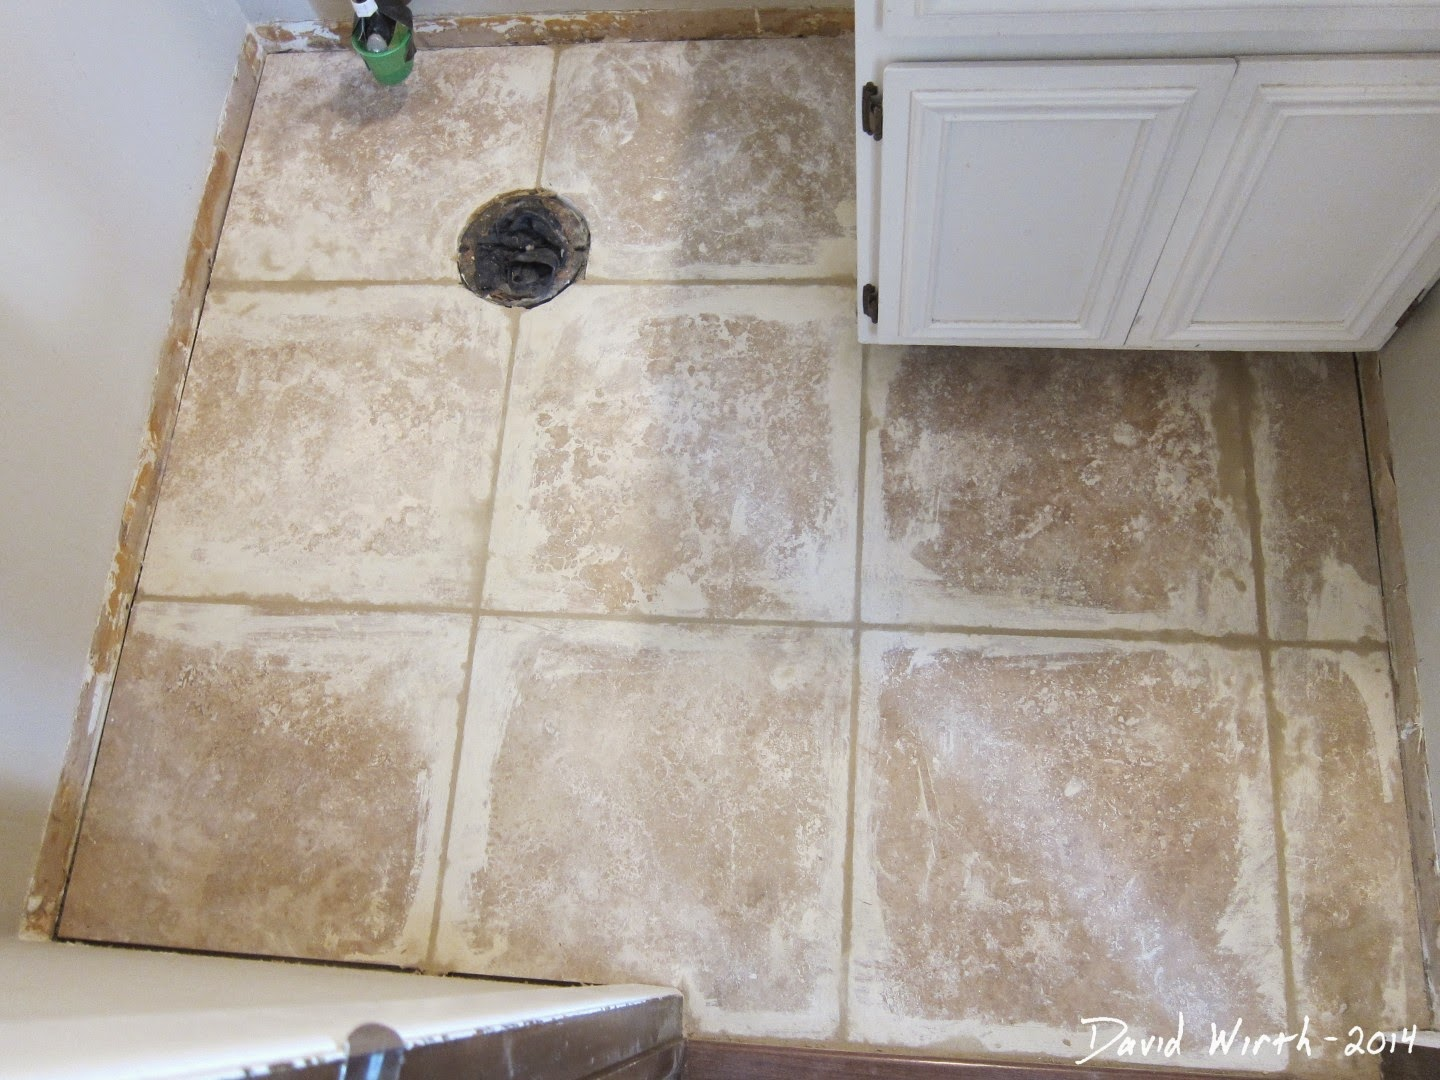 Bathroom remodels part 2 first floor bathroom how to grout a tile floor dailygadgetfo Images